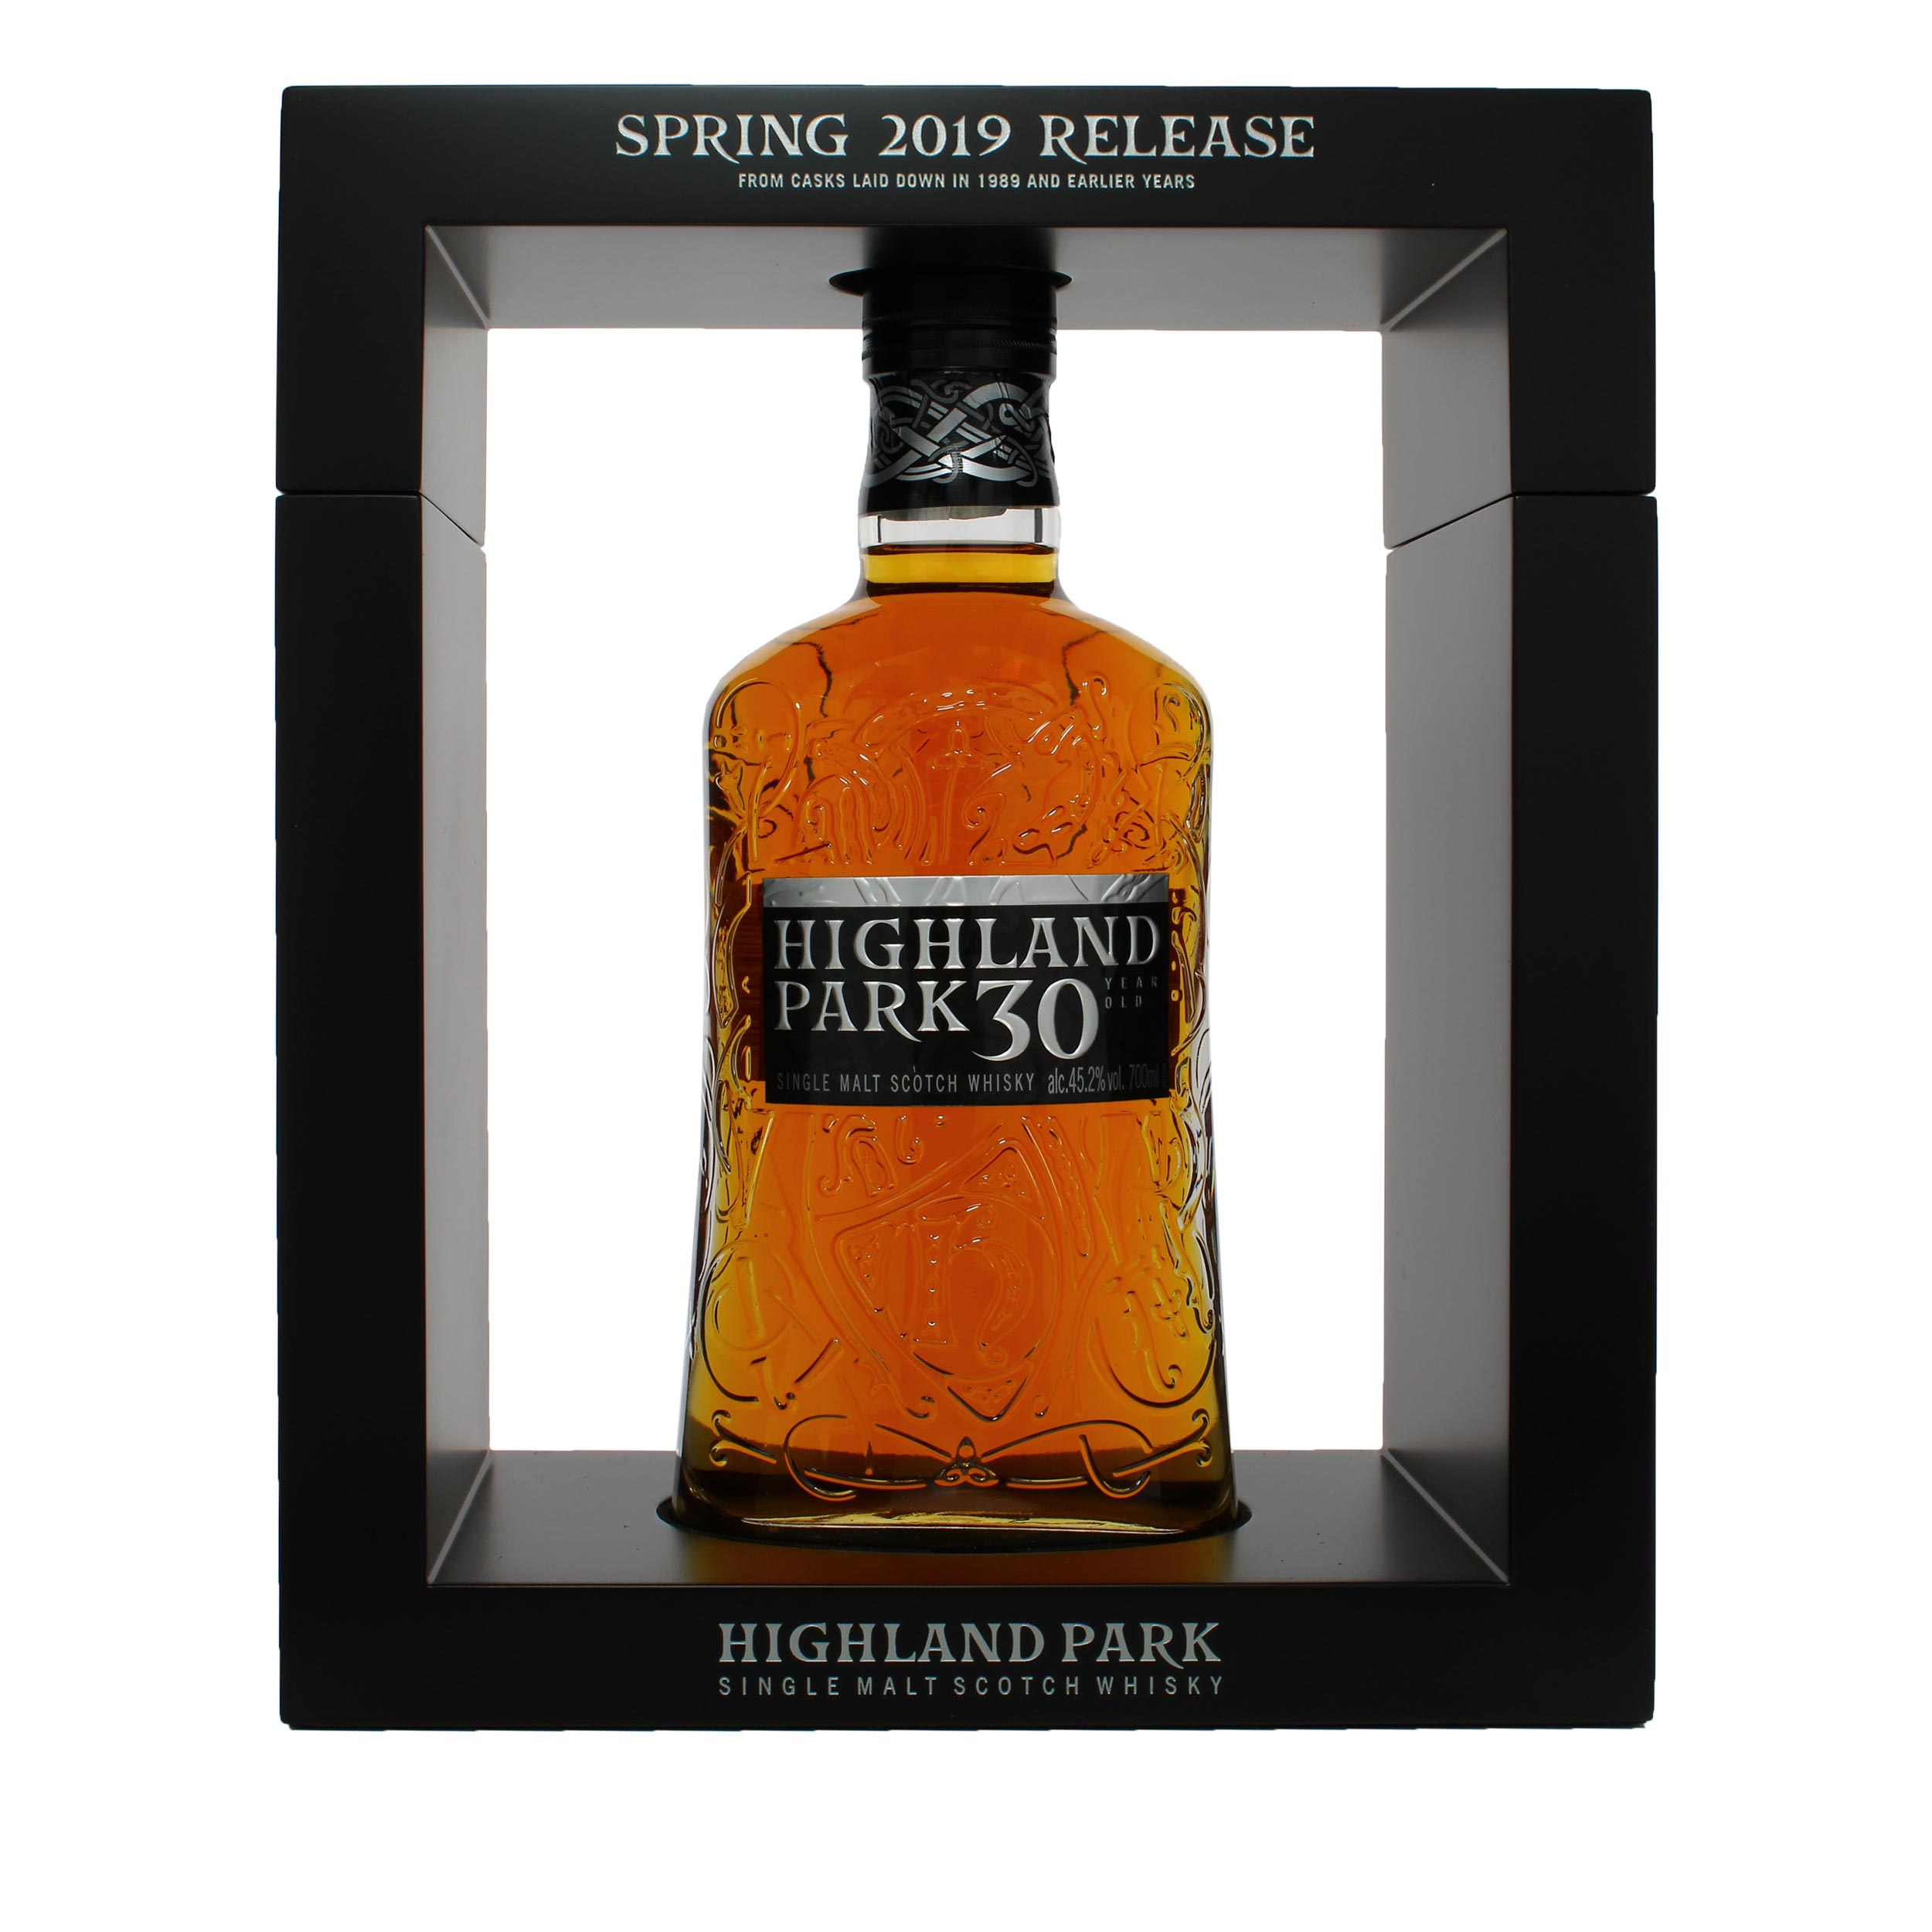 Highland Park 30 Year Old 2019 Release Limited Edition Island Single Malt Scotch Whisky 70cl